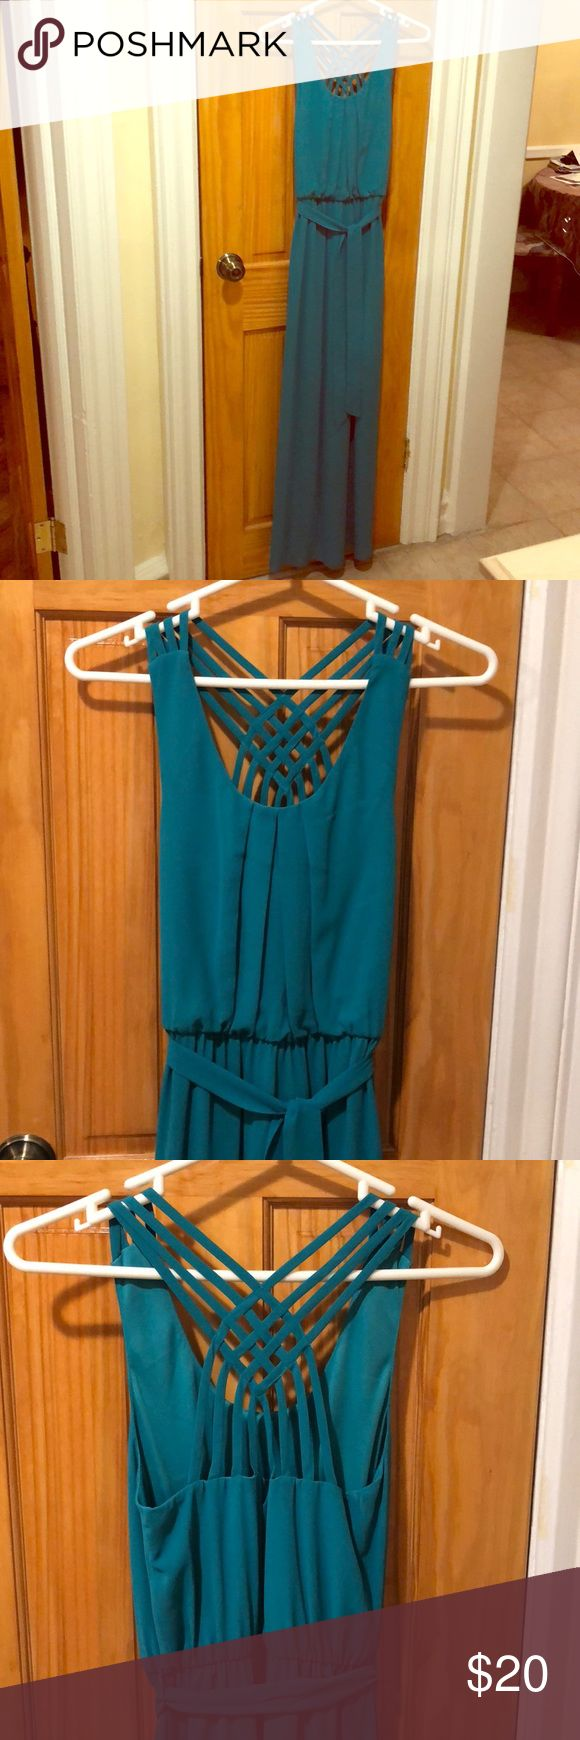 Long teal dress BCX teal maxi dress in XS. Total length is 59 inches. No zipper. No slit. Has teal colored belt that can be removed. Worn once. BCX Dresses Maxi